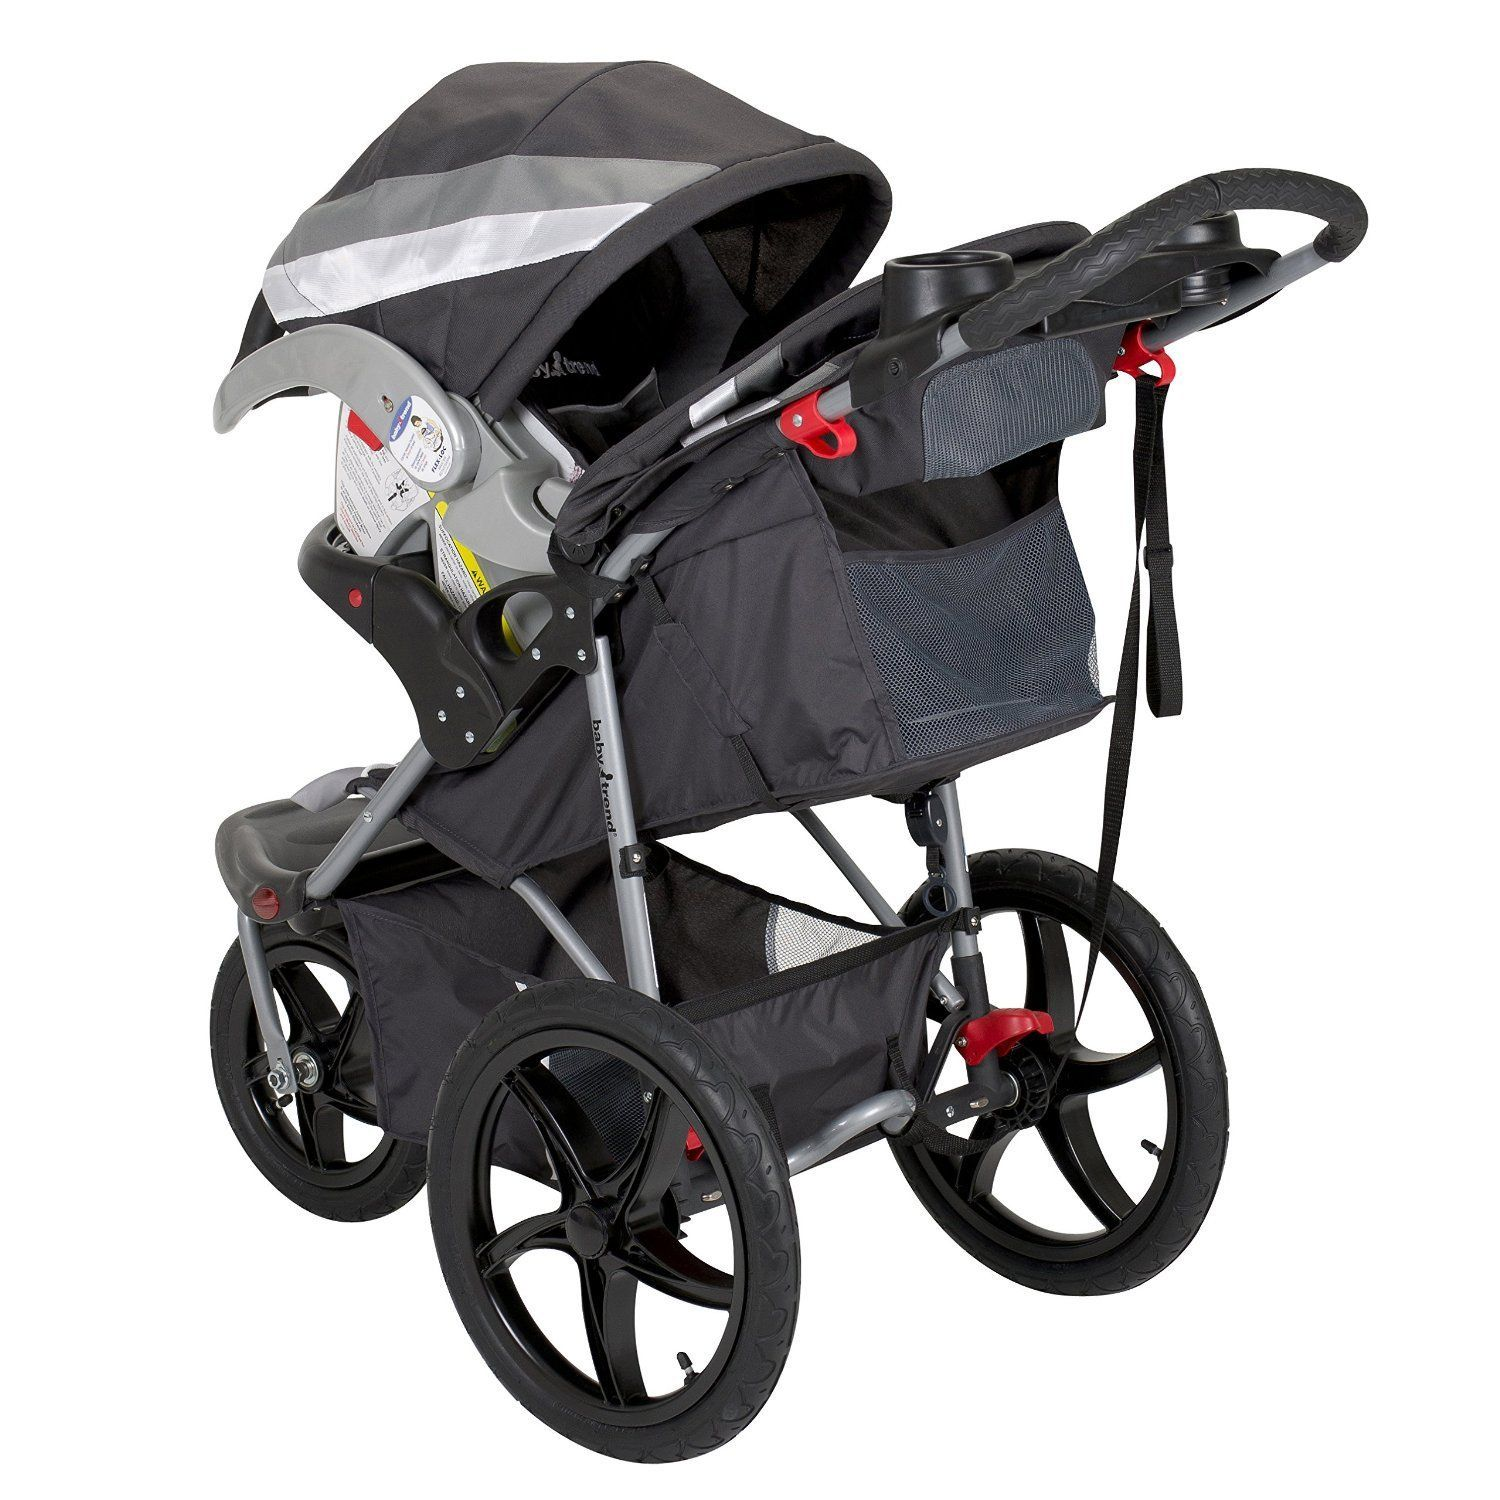 Baby Trend Range Jogging Stroller and Infant Car Seat